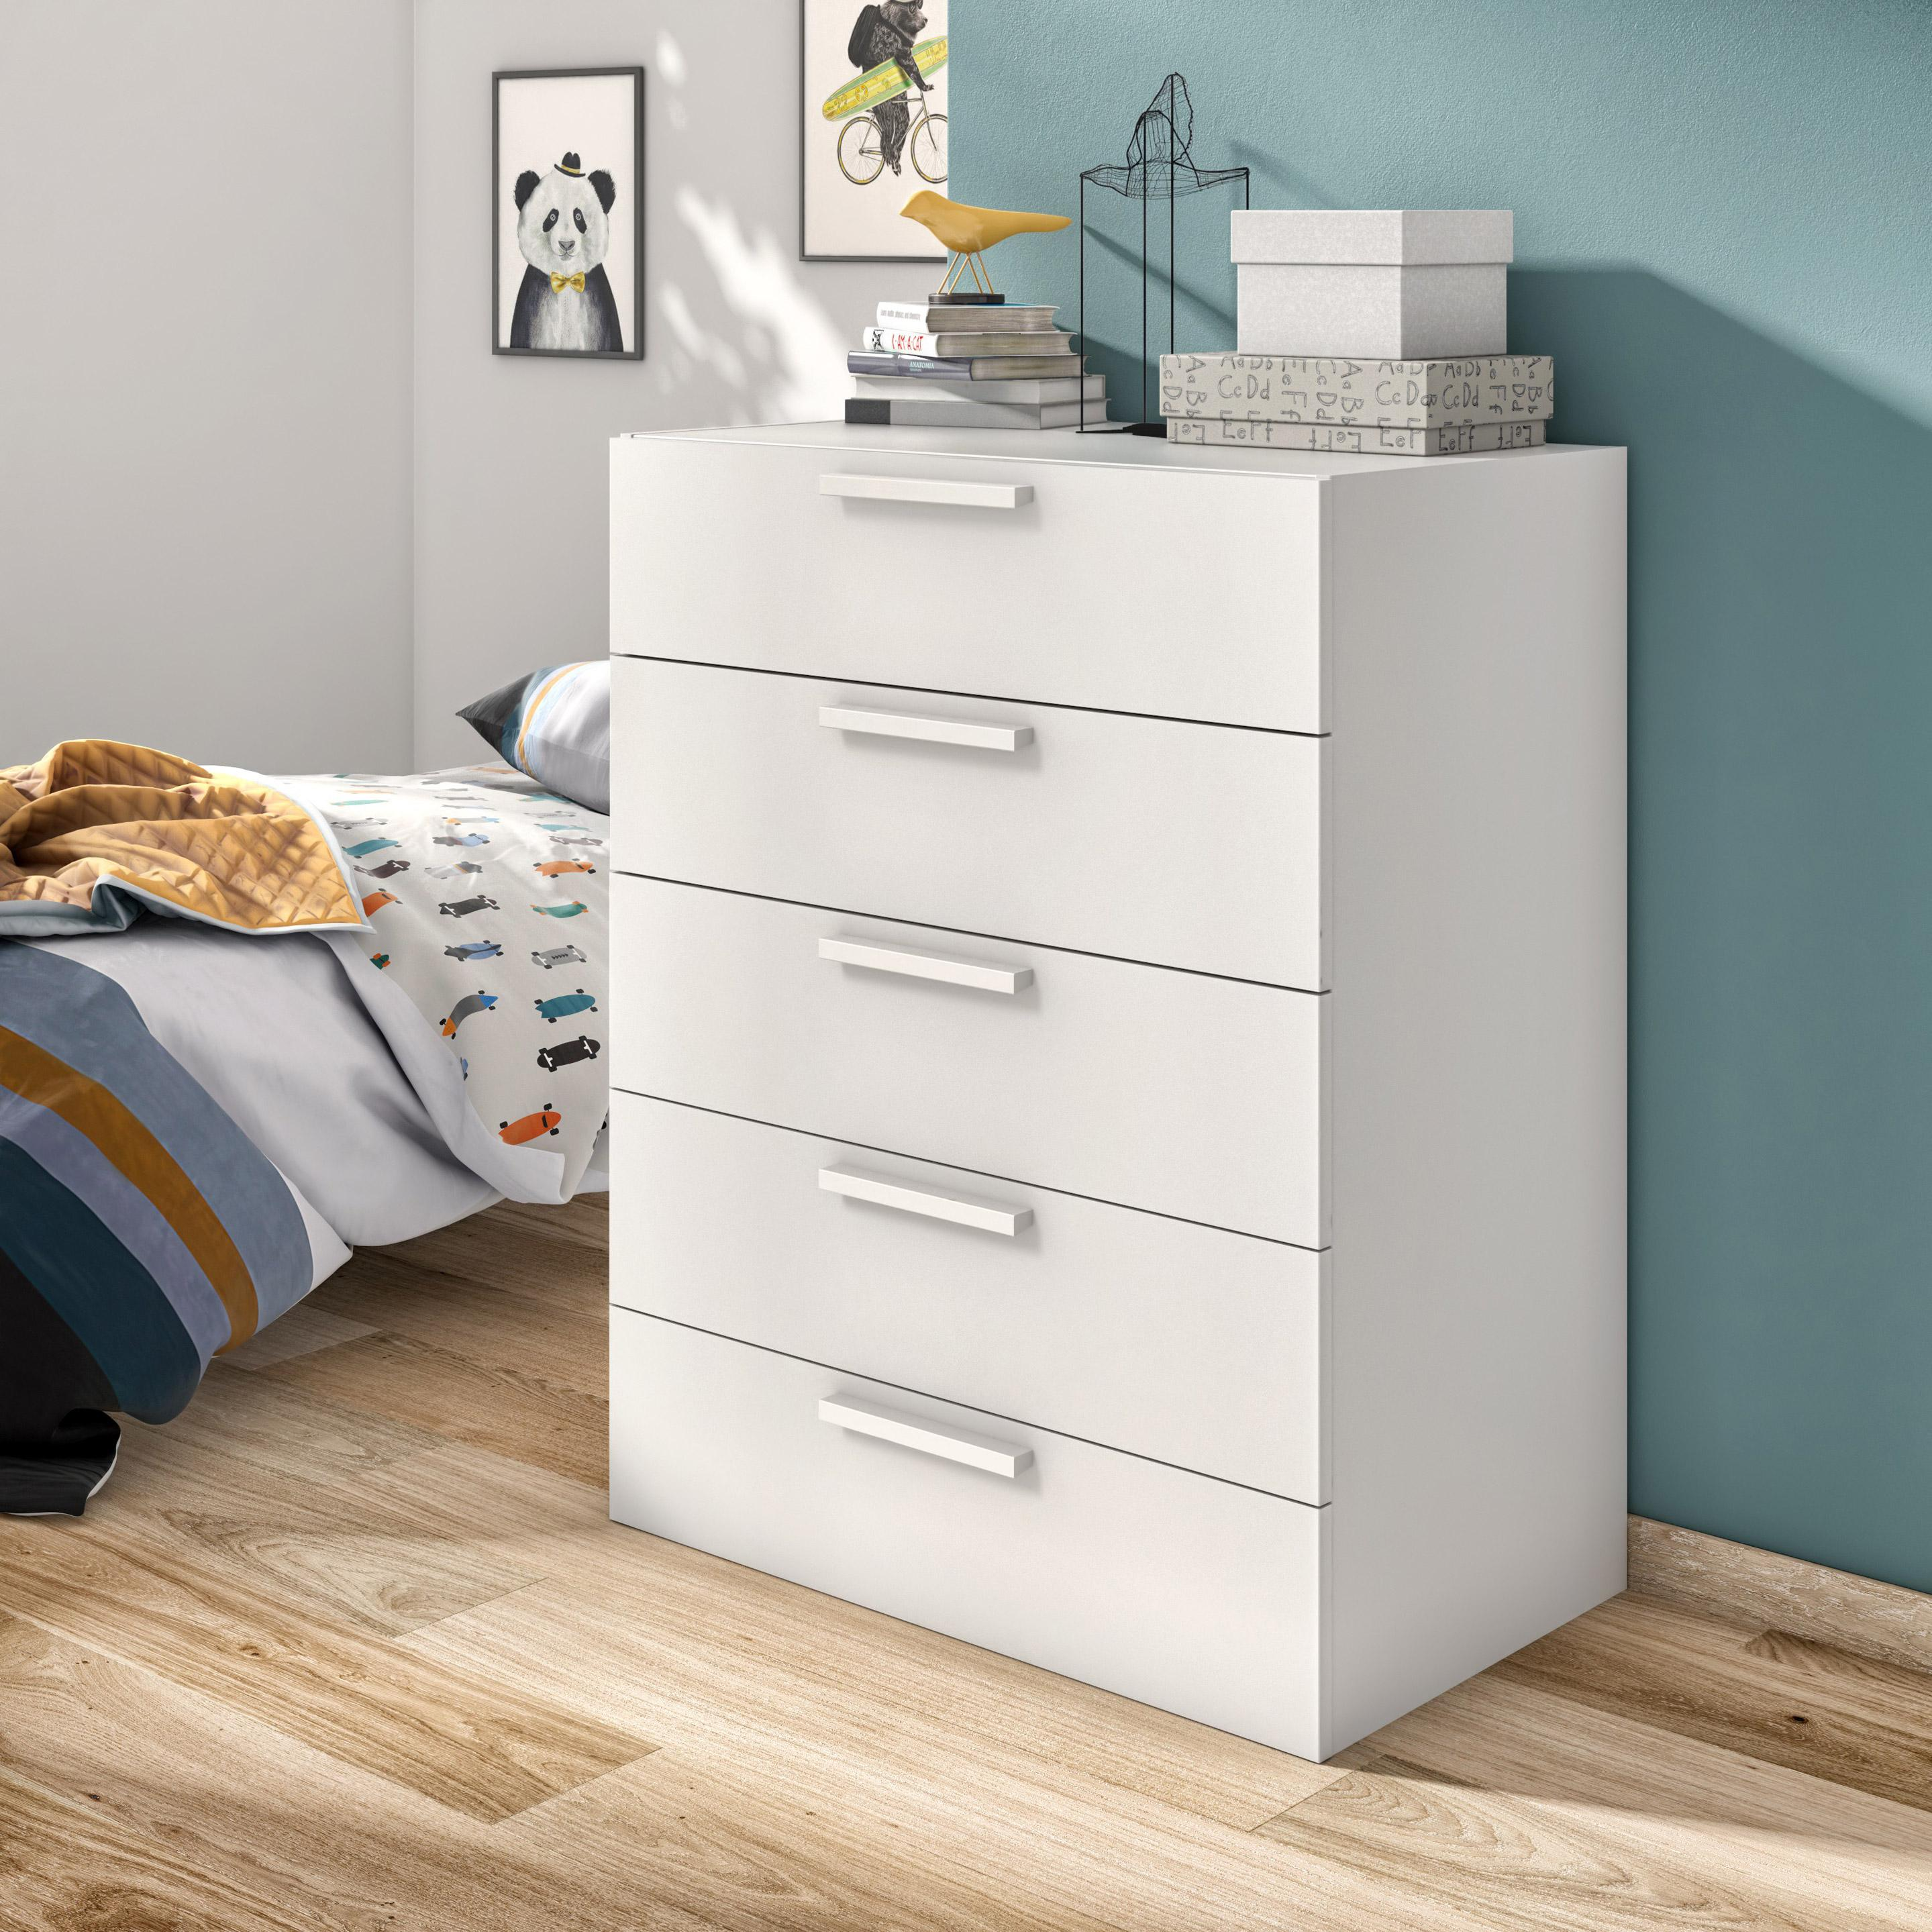 Commode Spaceo Home Blanc H 100 X L 80 X P 45 Cm Leroy Merlin